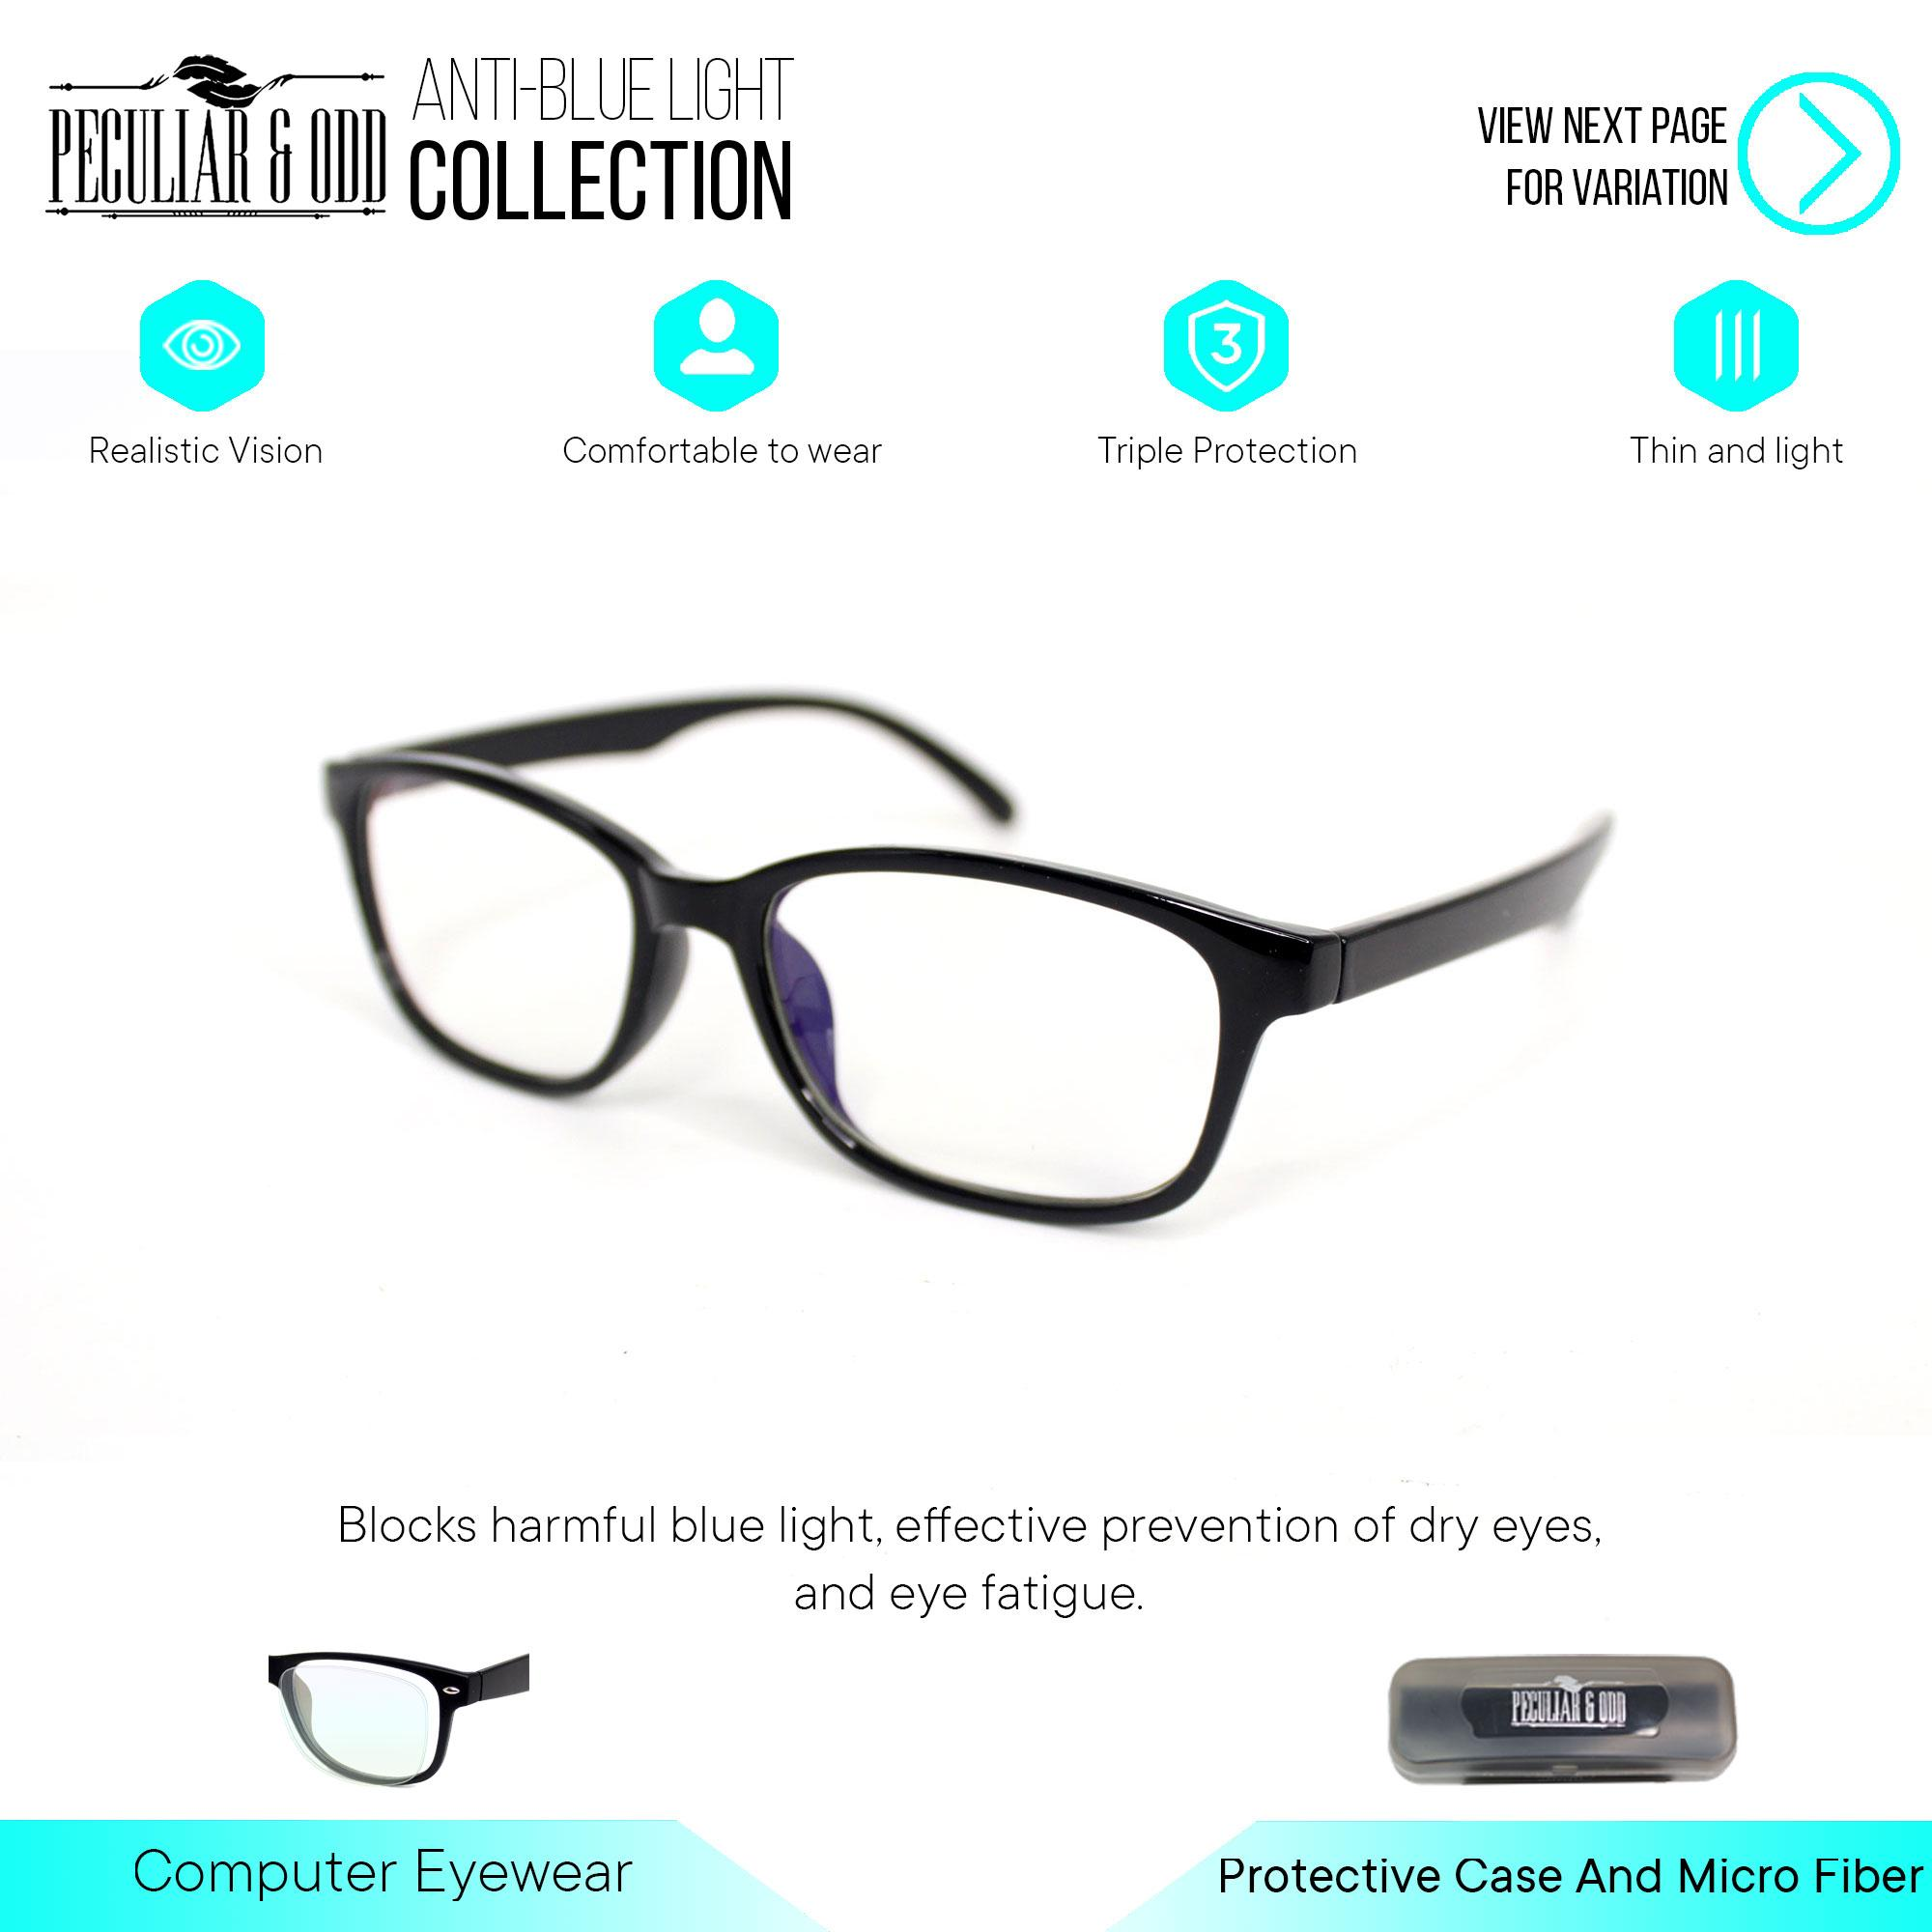 b9dbcde9208 Peculiar Square 3028 CoalBlackClear Anti Radiation Computer Eyeglass  Optical Replaceable Eyewear Unisex new